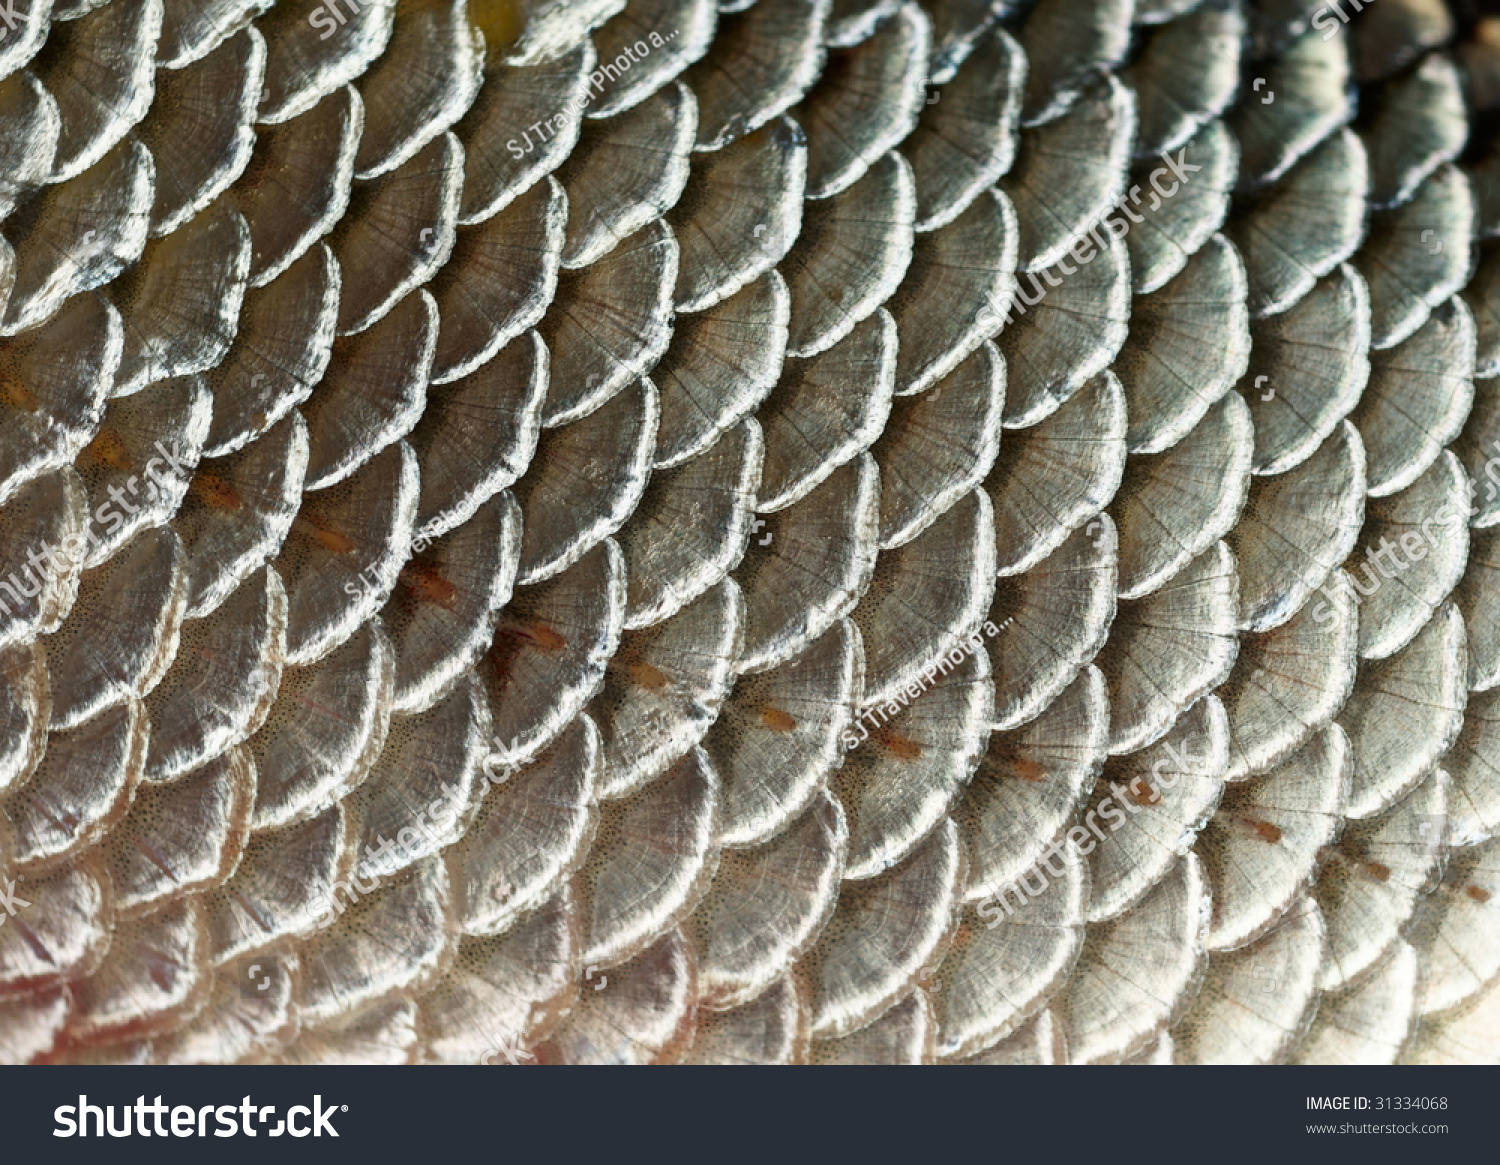 371828512955171469 furthermore LOSING WEIGHT  Mind Over Matter in addition 25 Cool Small Tattoos Placement Ideas also Stock Photo Fish Scales Background in addition The Girl With The Dragon Tattoo. on fish scale tattoo